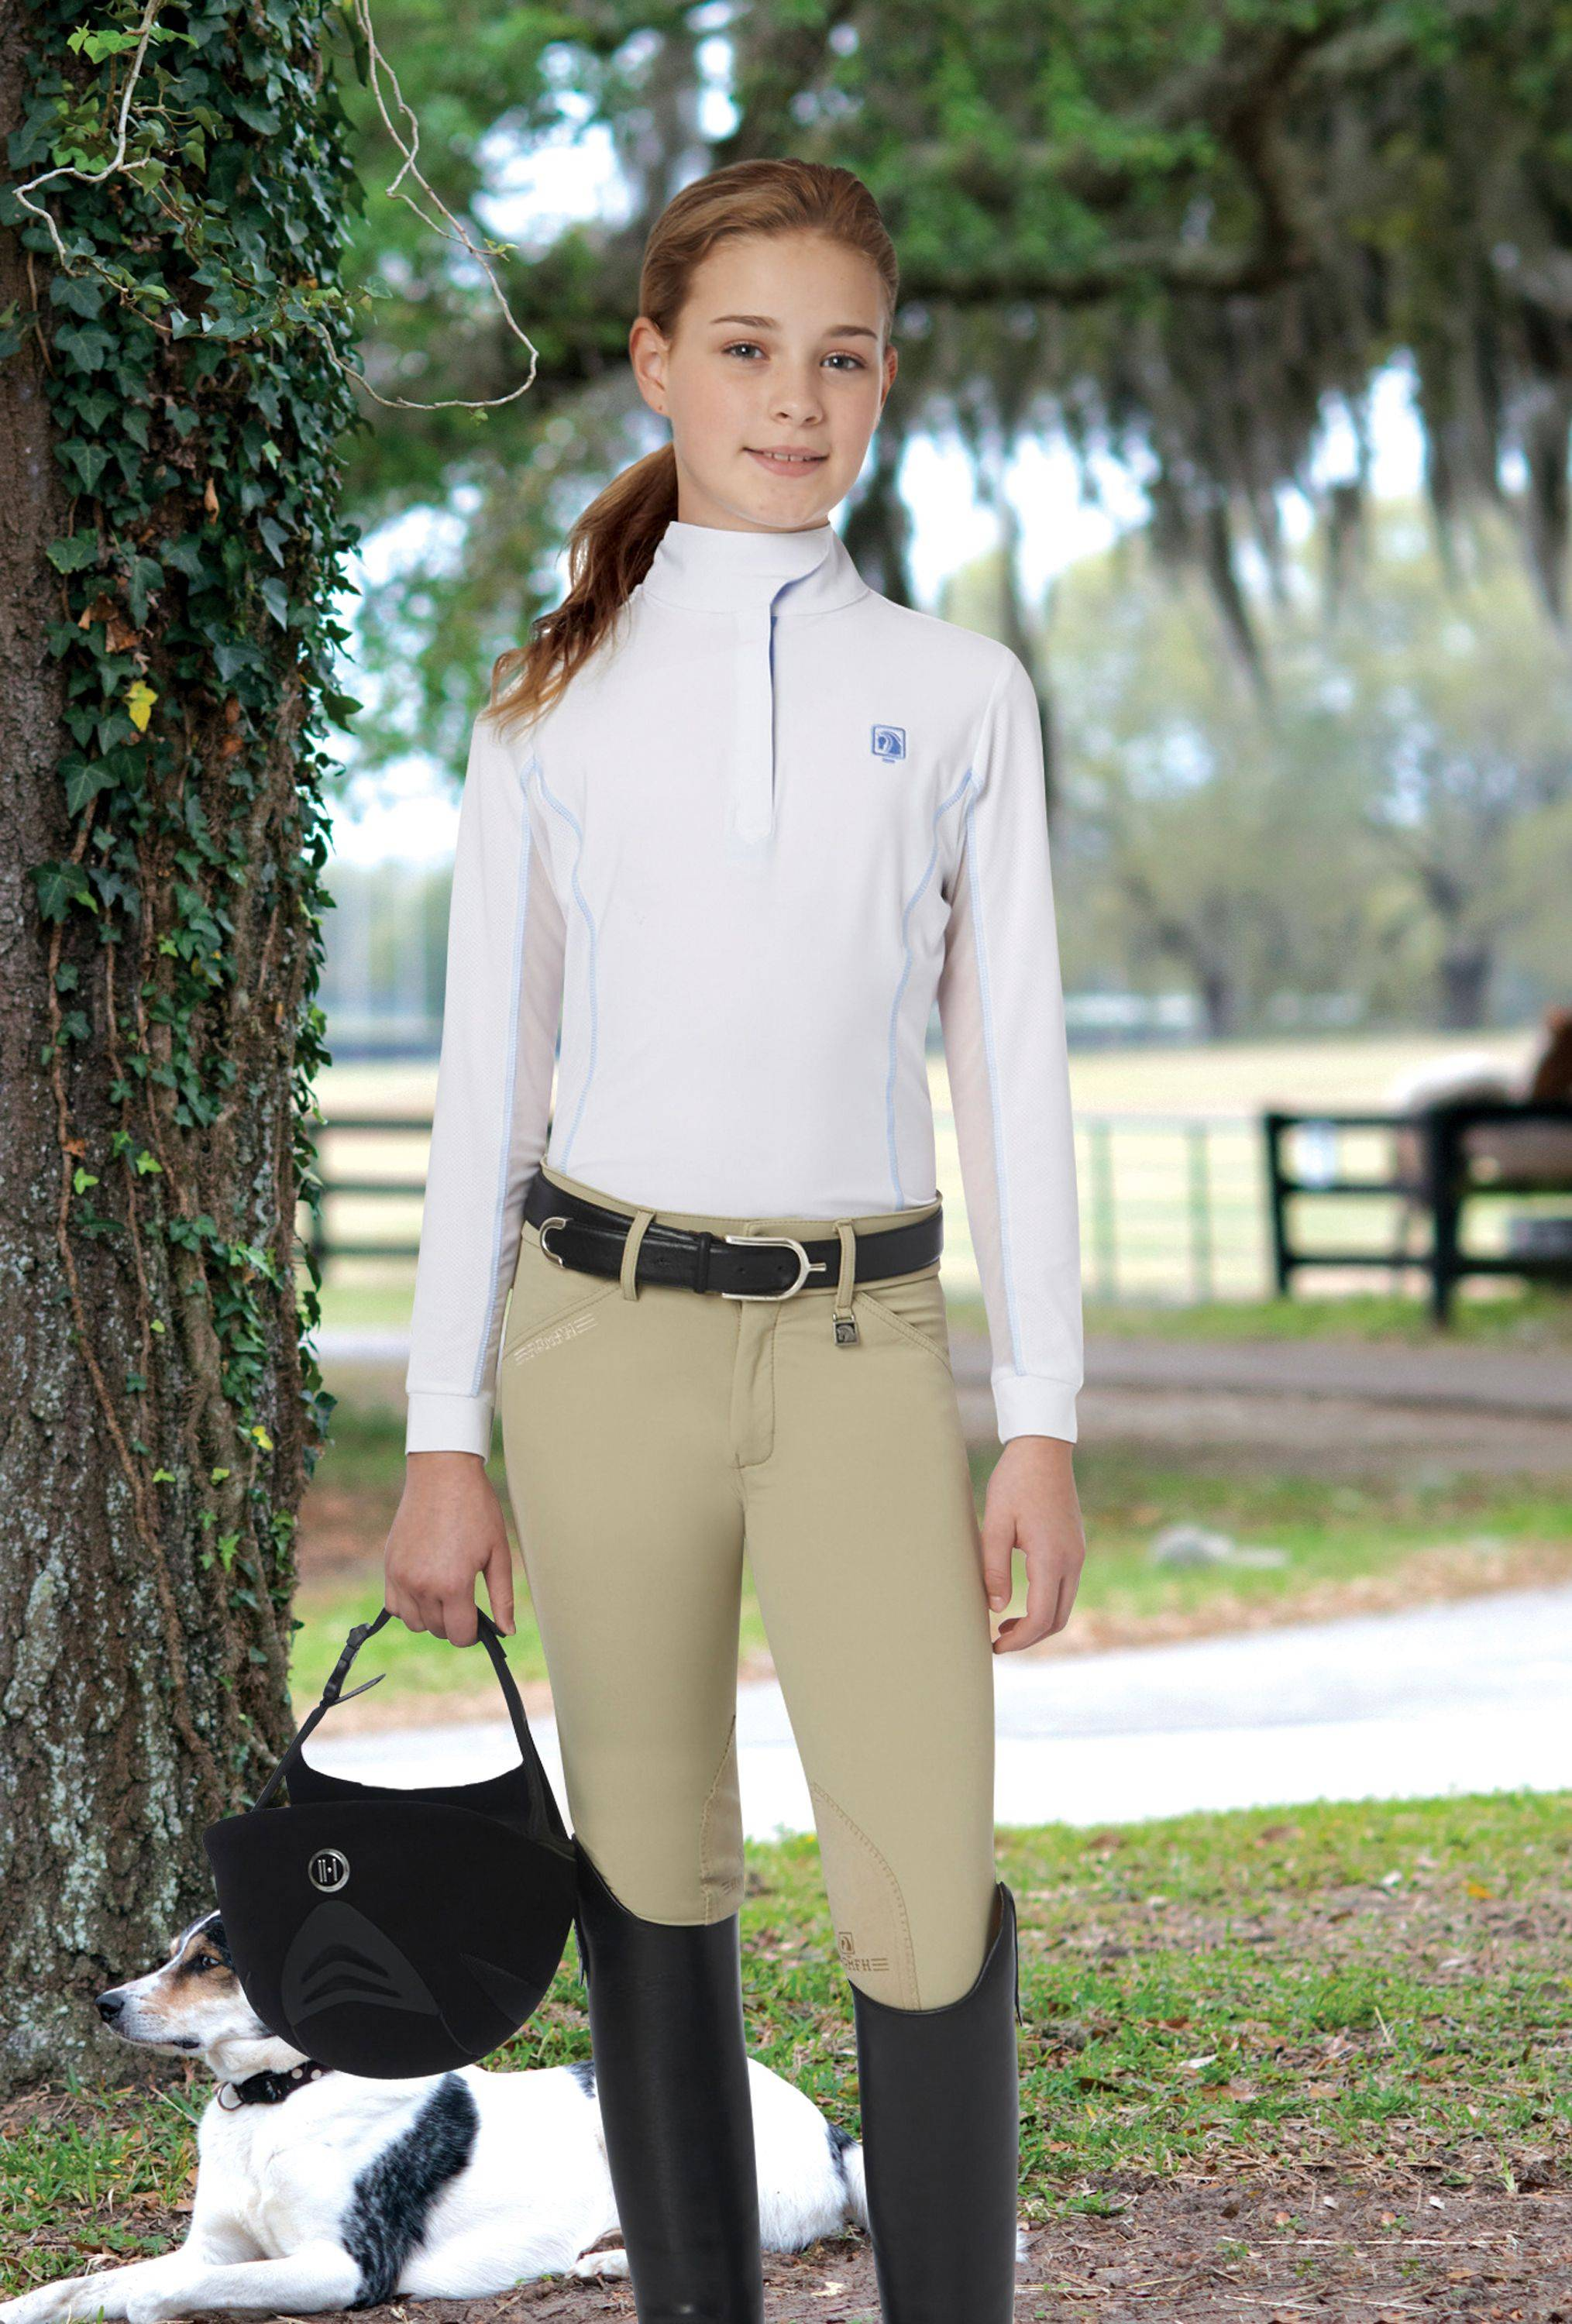 Outlet - Romfh Sarafina Breeches - Kids, Euro Seat, 12, Beige